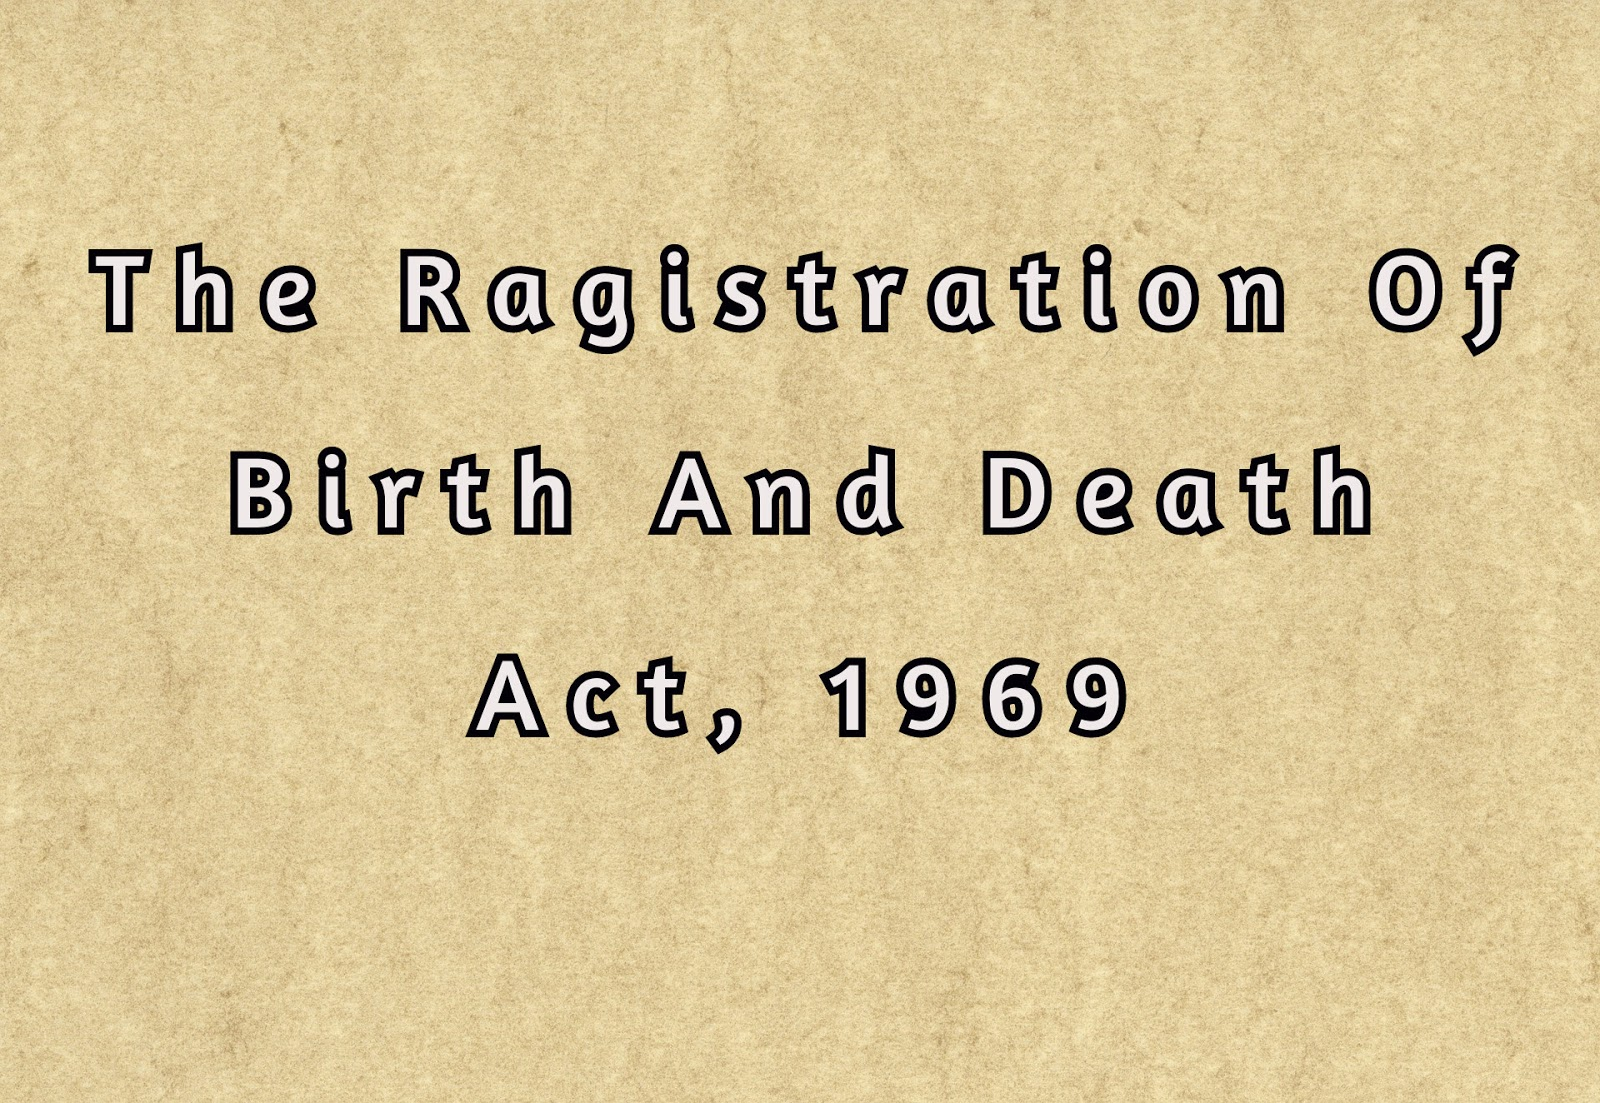 Births and deaths Registration Act, 1969